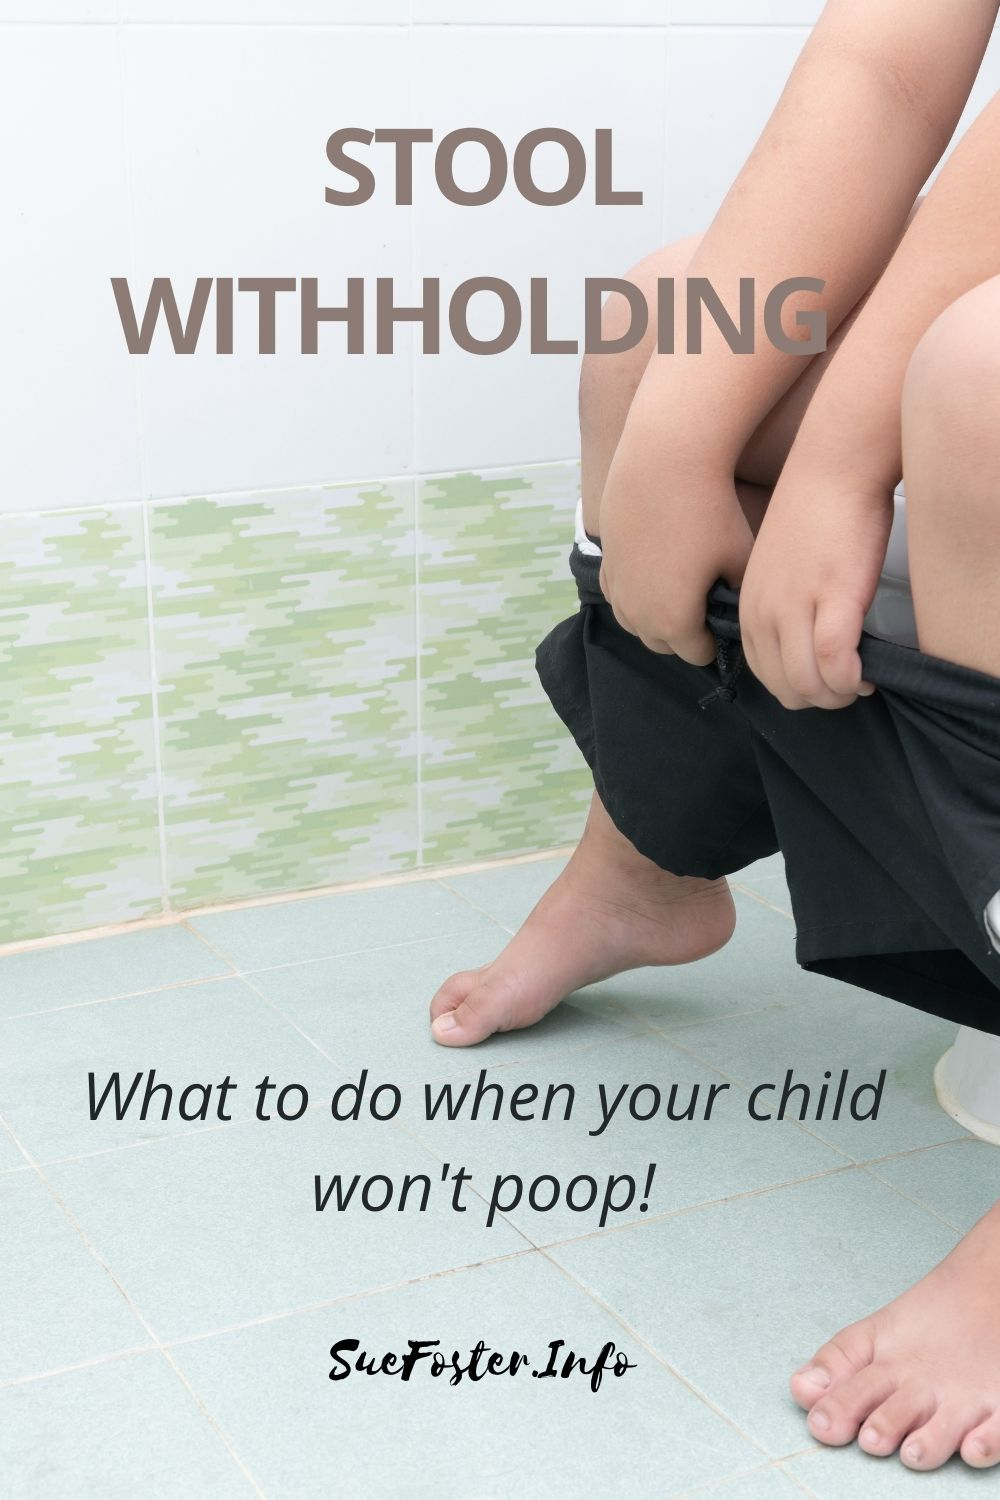 Stool withholding - what to do when your child won't poop